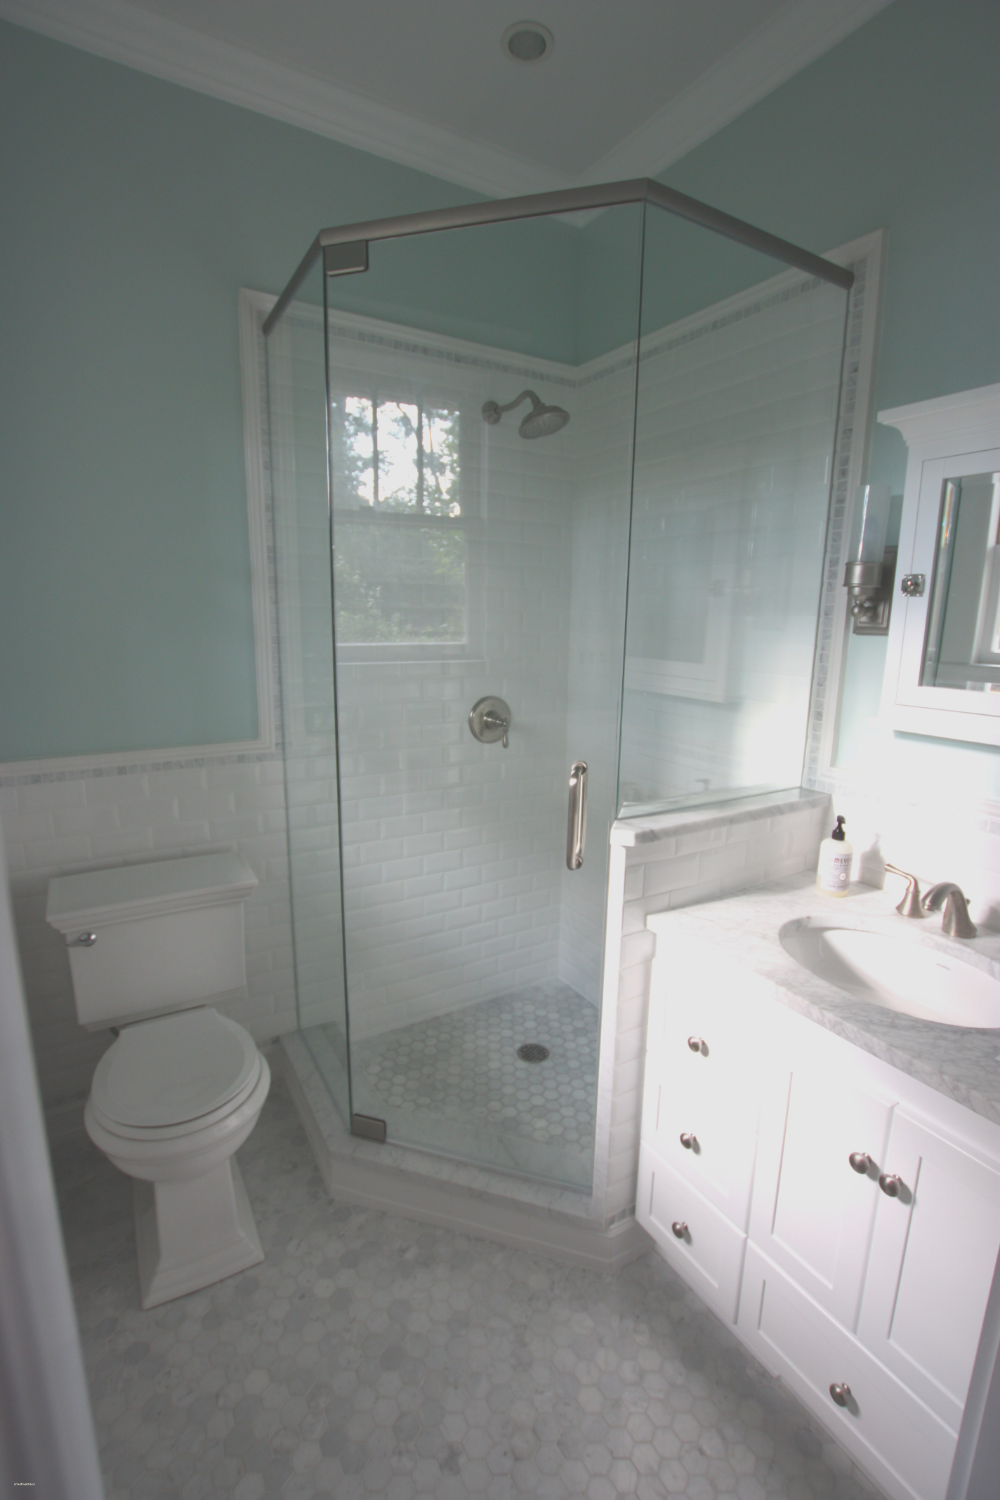 6x7 Bathroom Layout Google Search Home Depot Bathroom Small Bathroom Remodel Budget Bathroom Remodel